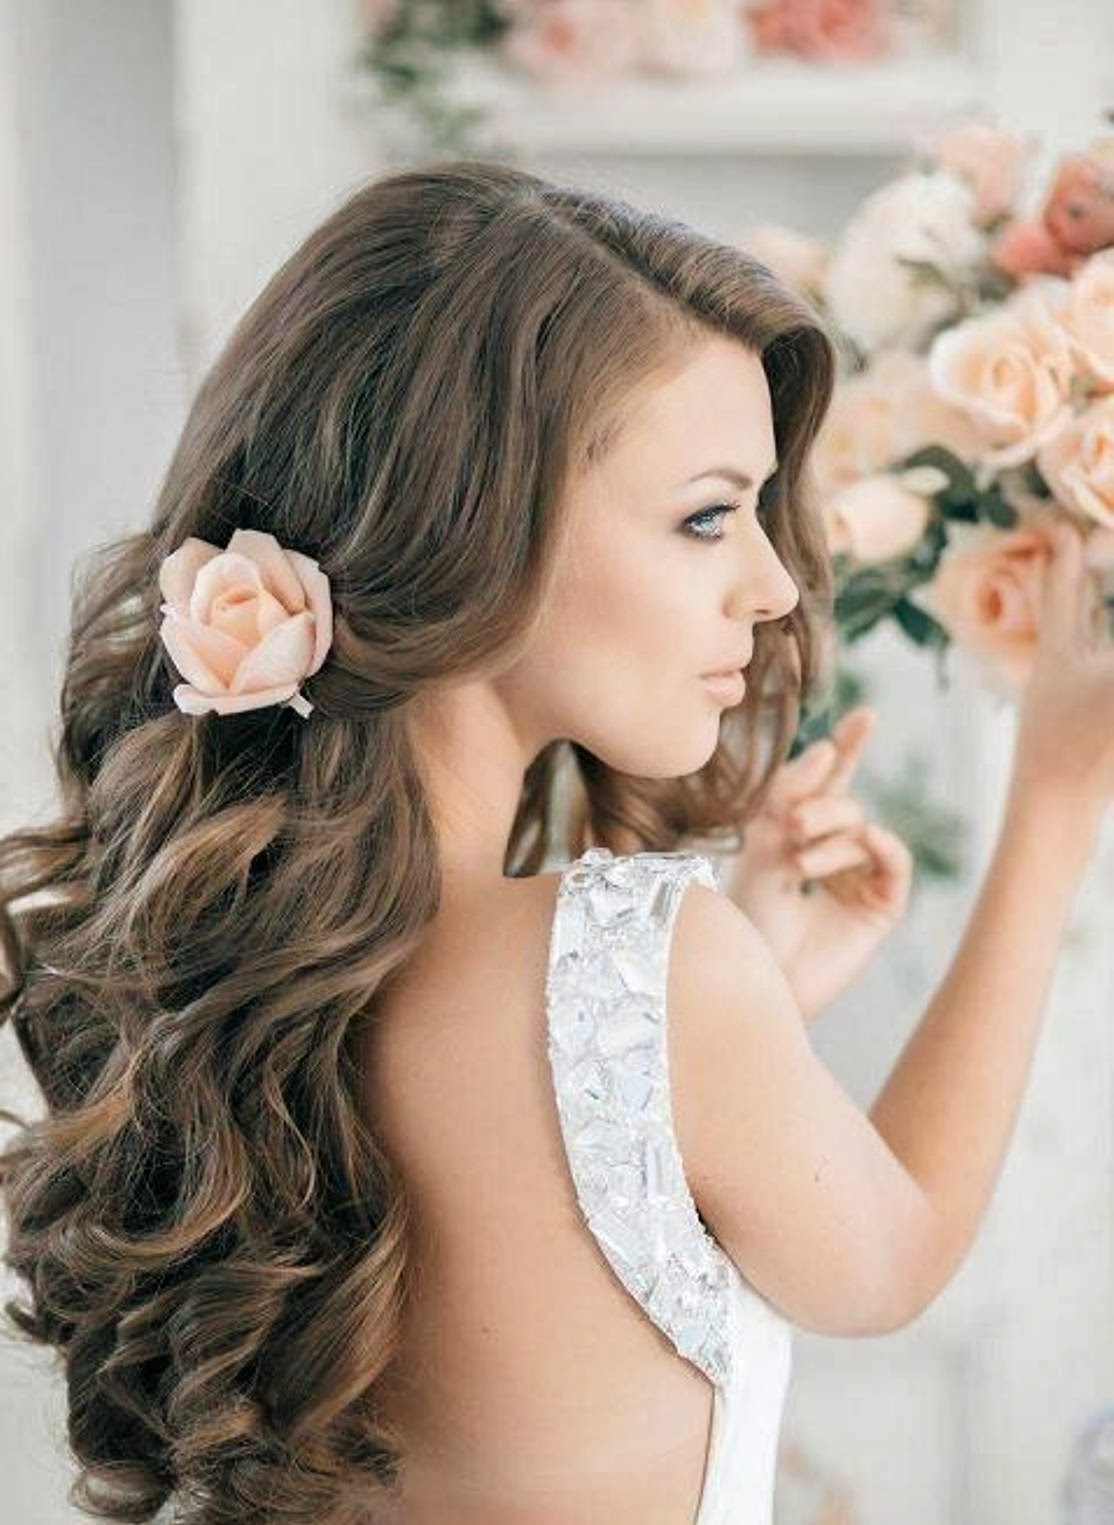 hairstyles for long hair wedding guest hairstyles for long hair